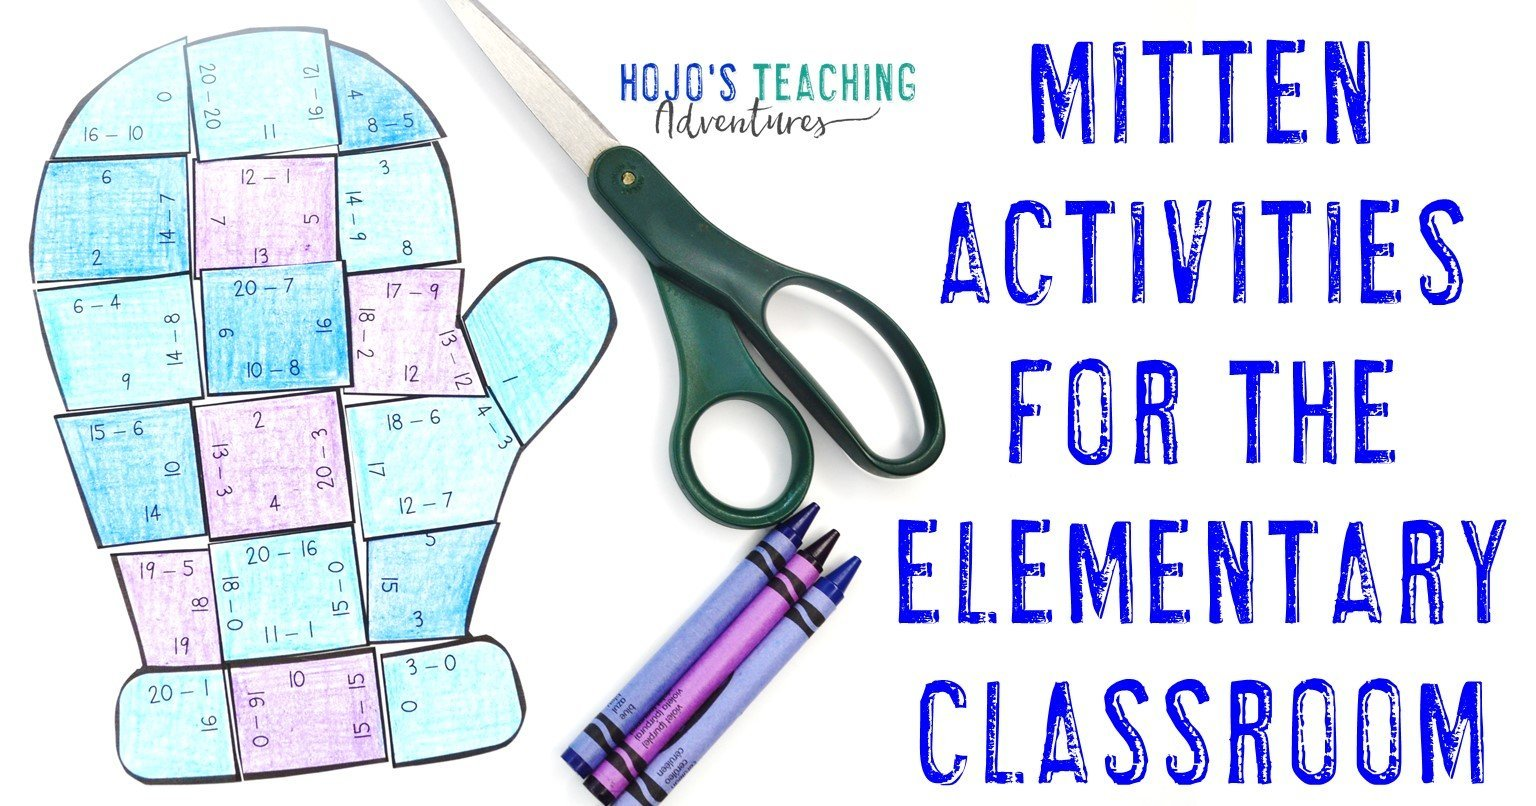 """subtraction mitten puzzle with text """"Mitten Activities for the Elementary Classroom"""""""